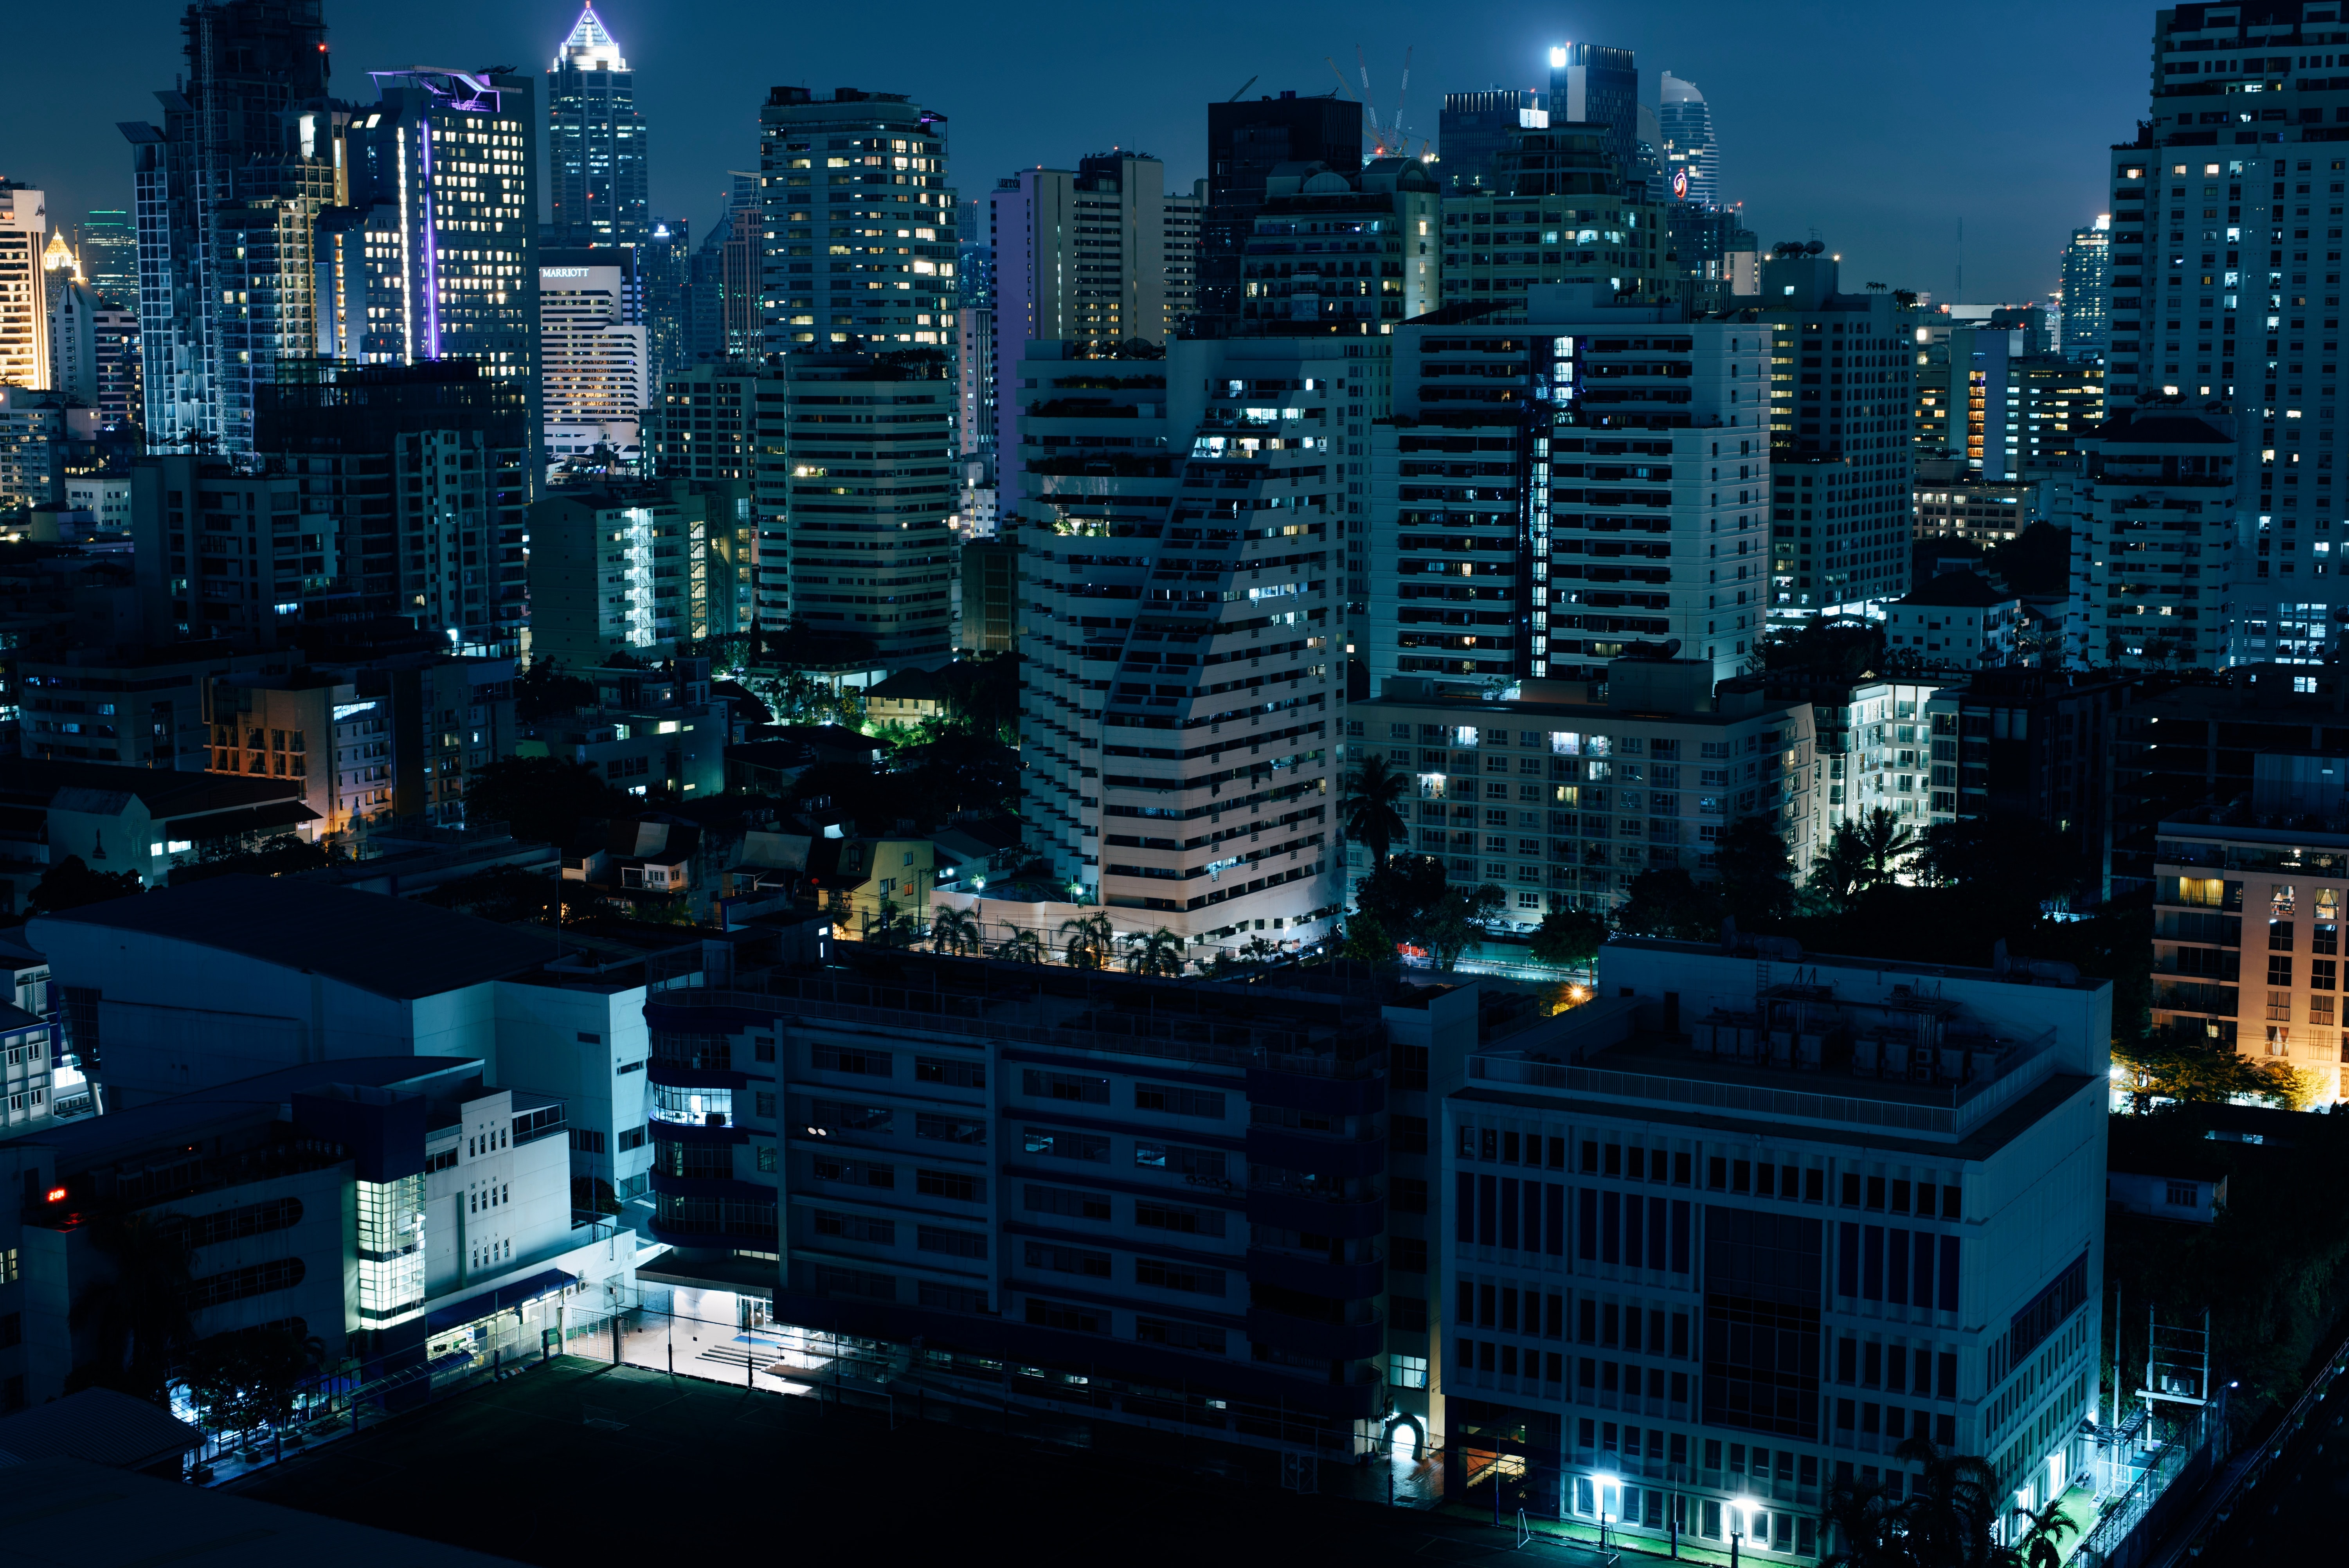 aerial photography of city escape during night